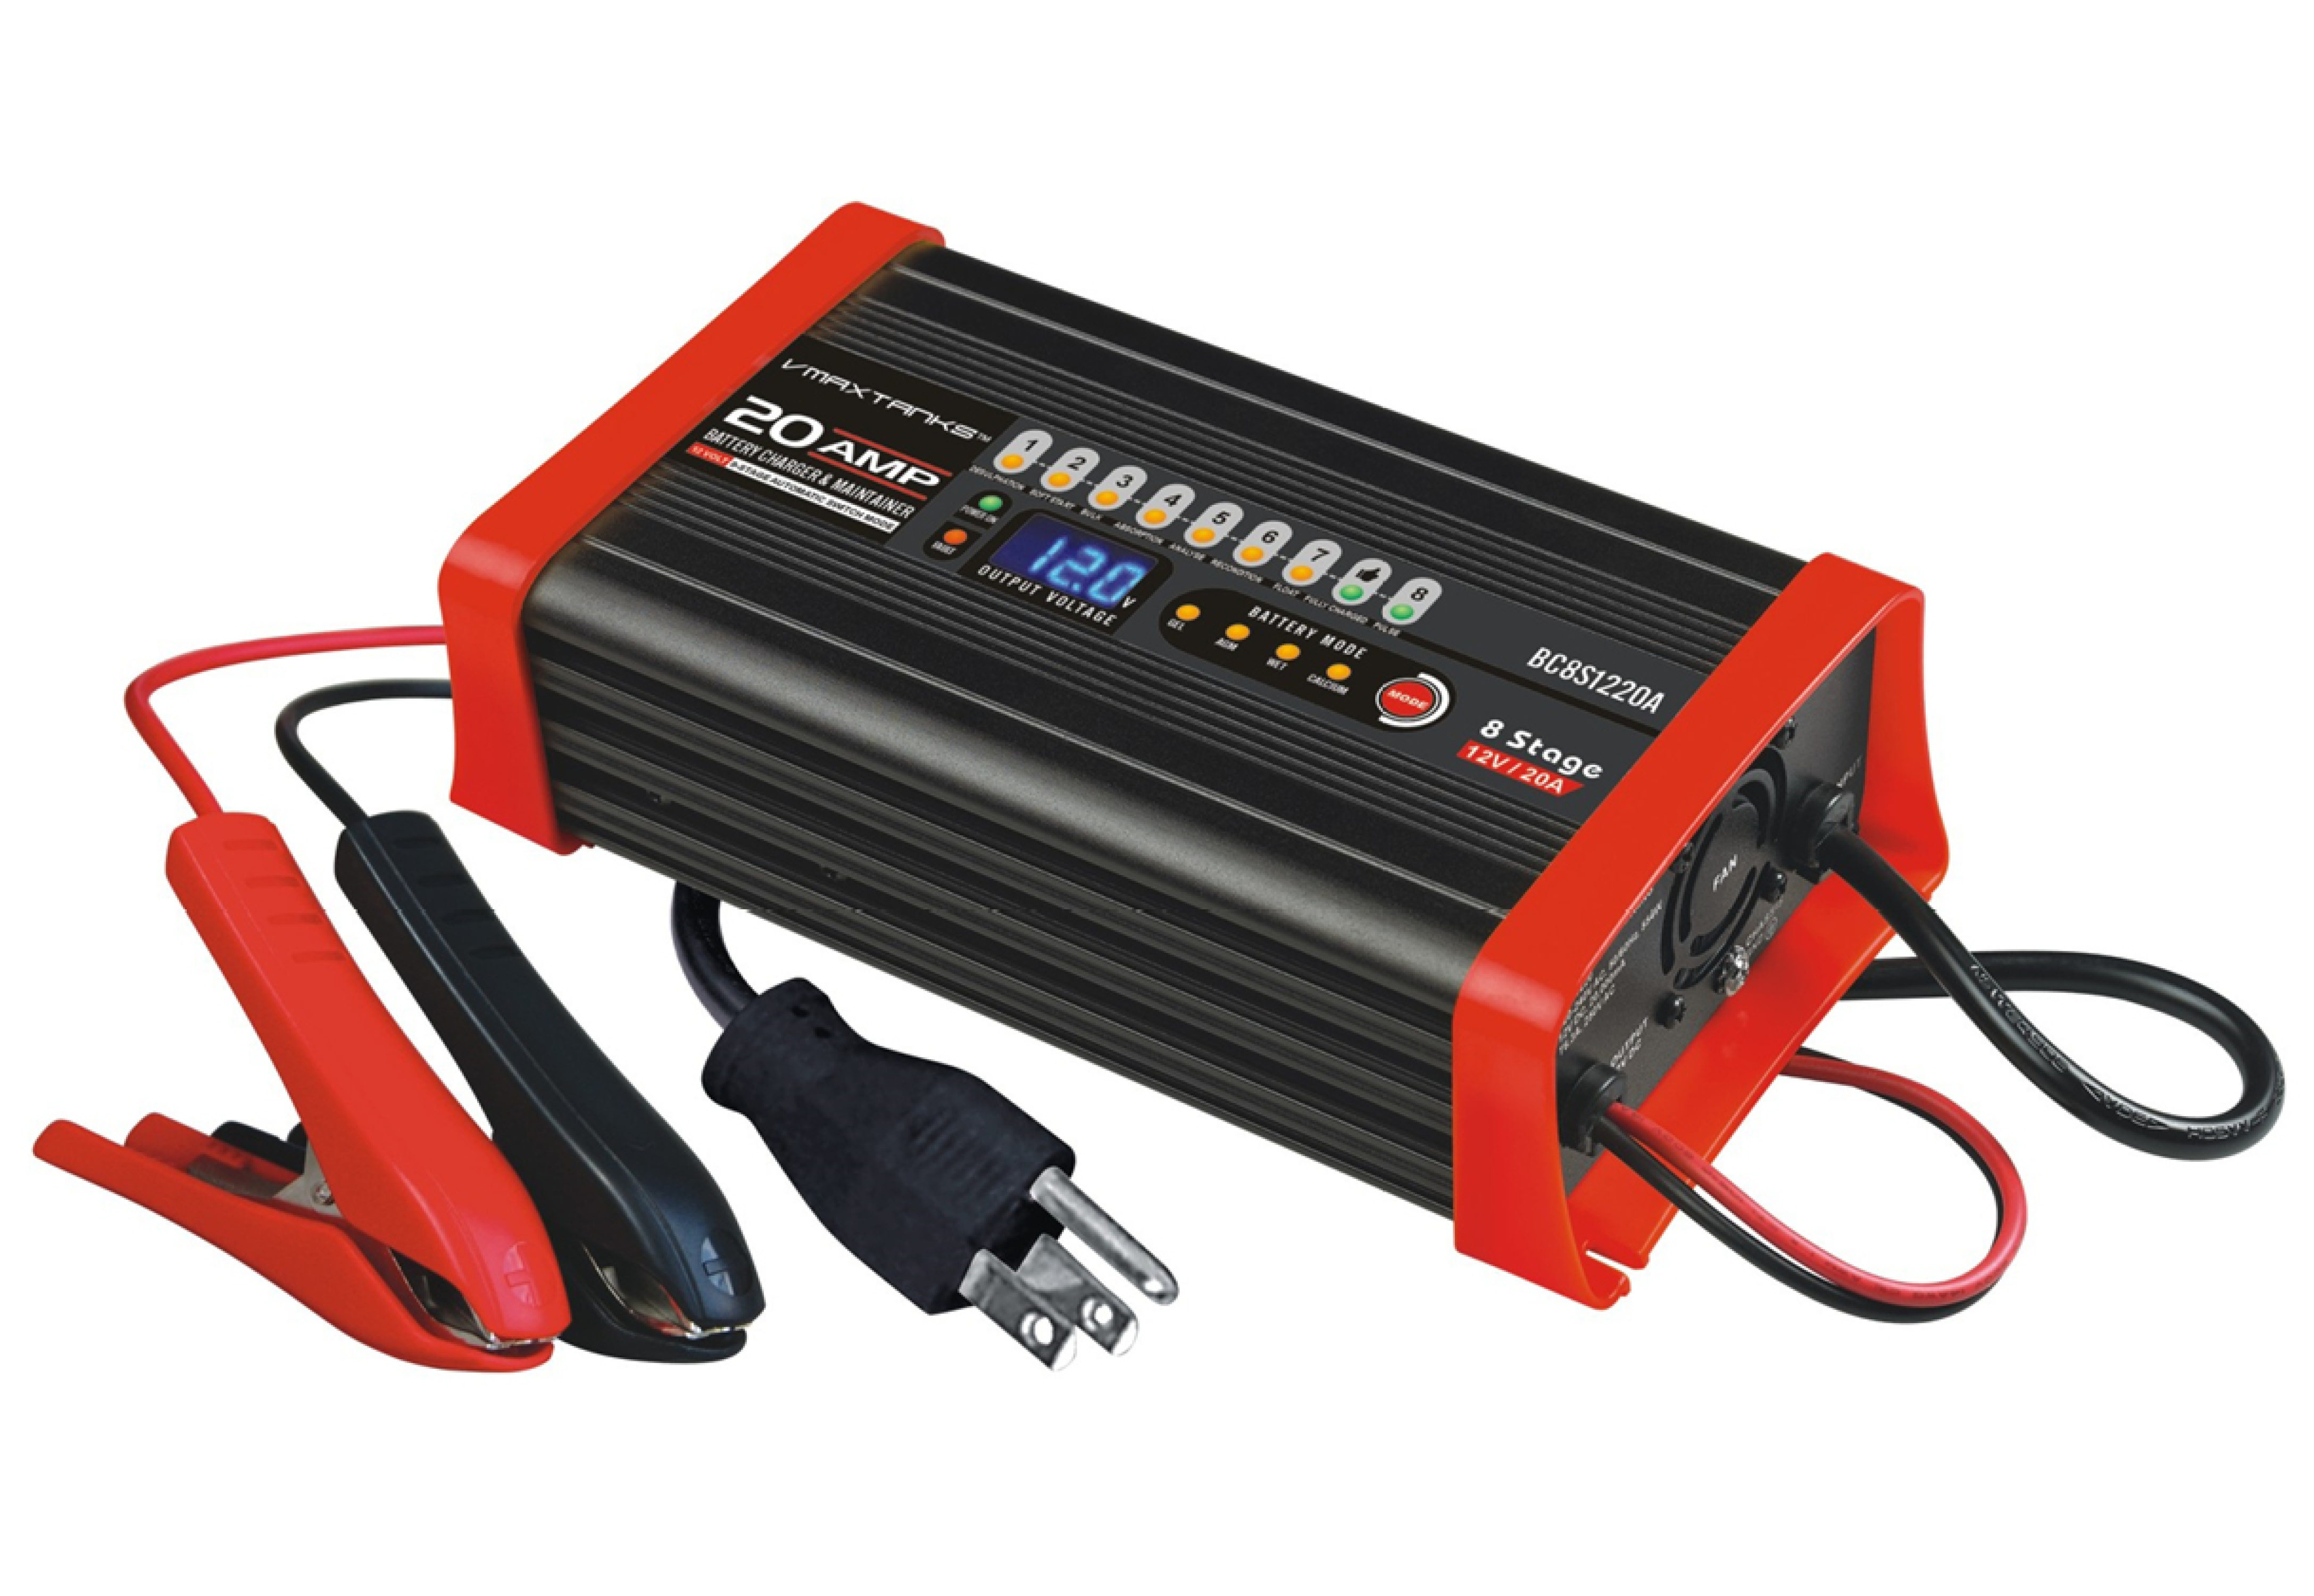 Bc8s1220a 12v 20a 8 Stage Smart Battery Charger Maintainer